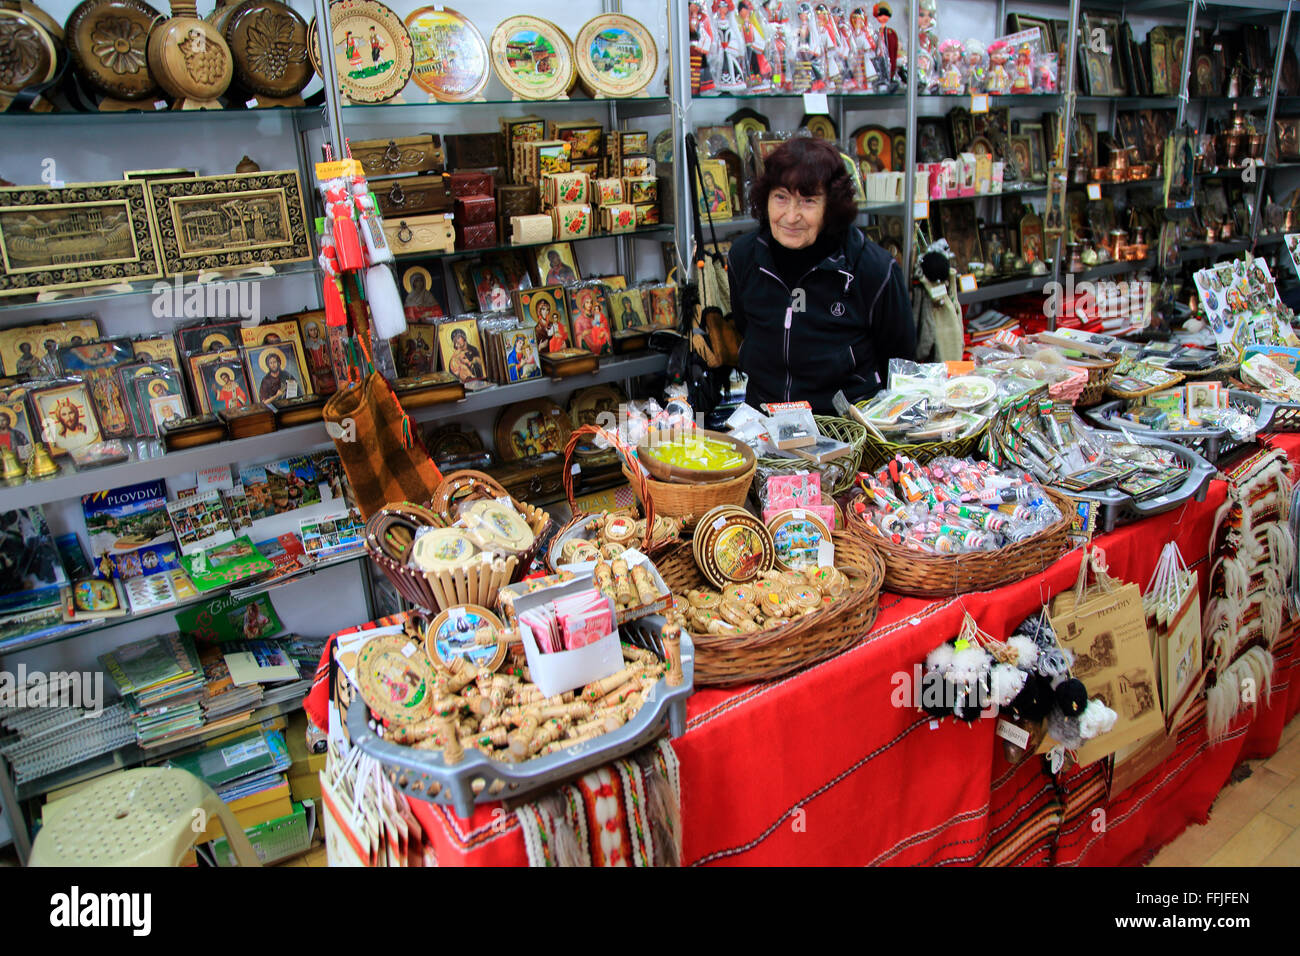 Woman shopkeeper standing in her souvenir gift shop, Plovdiv, Bulgaria, eastern Europe - Stock Image